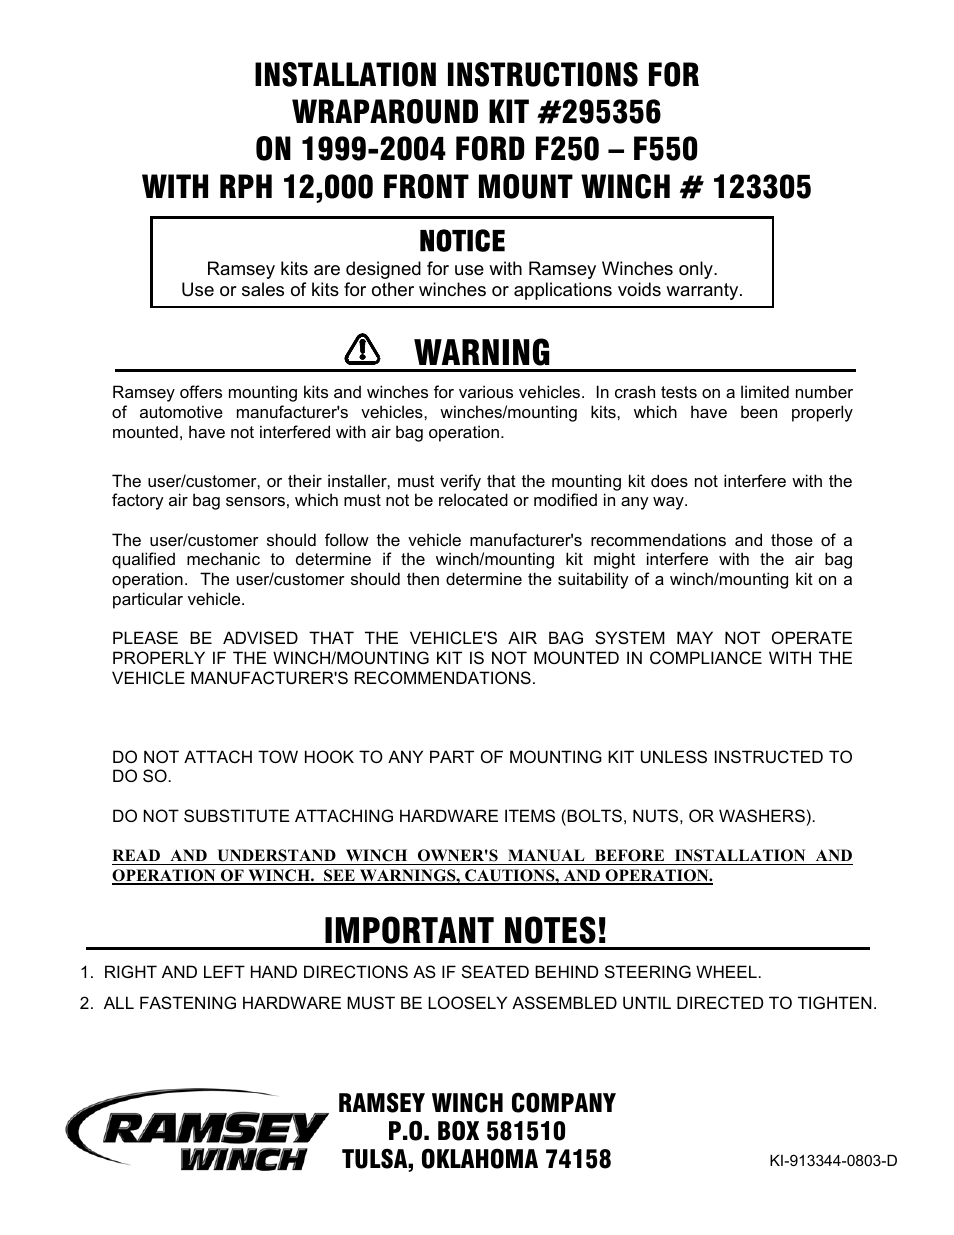 Ramsey Winch FORD WRAPAROUND KIT 295356 (RPH 12000) User Manual | 7 pages